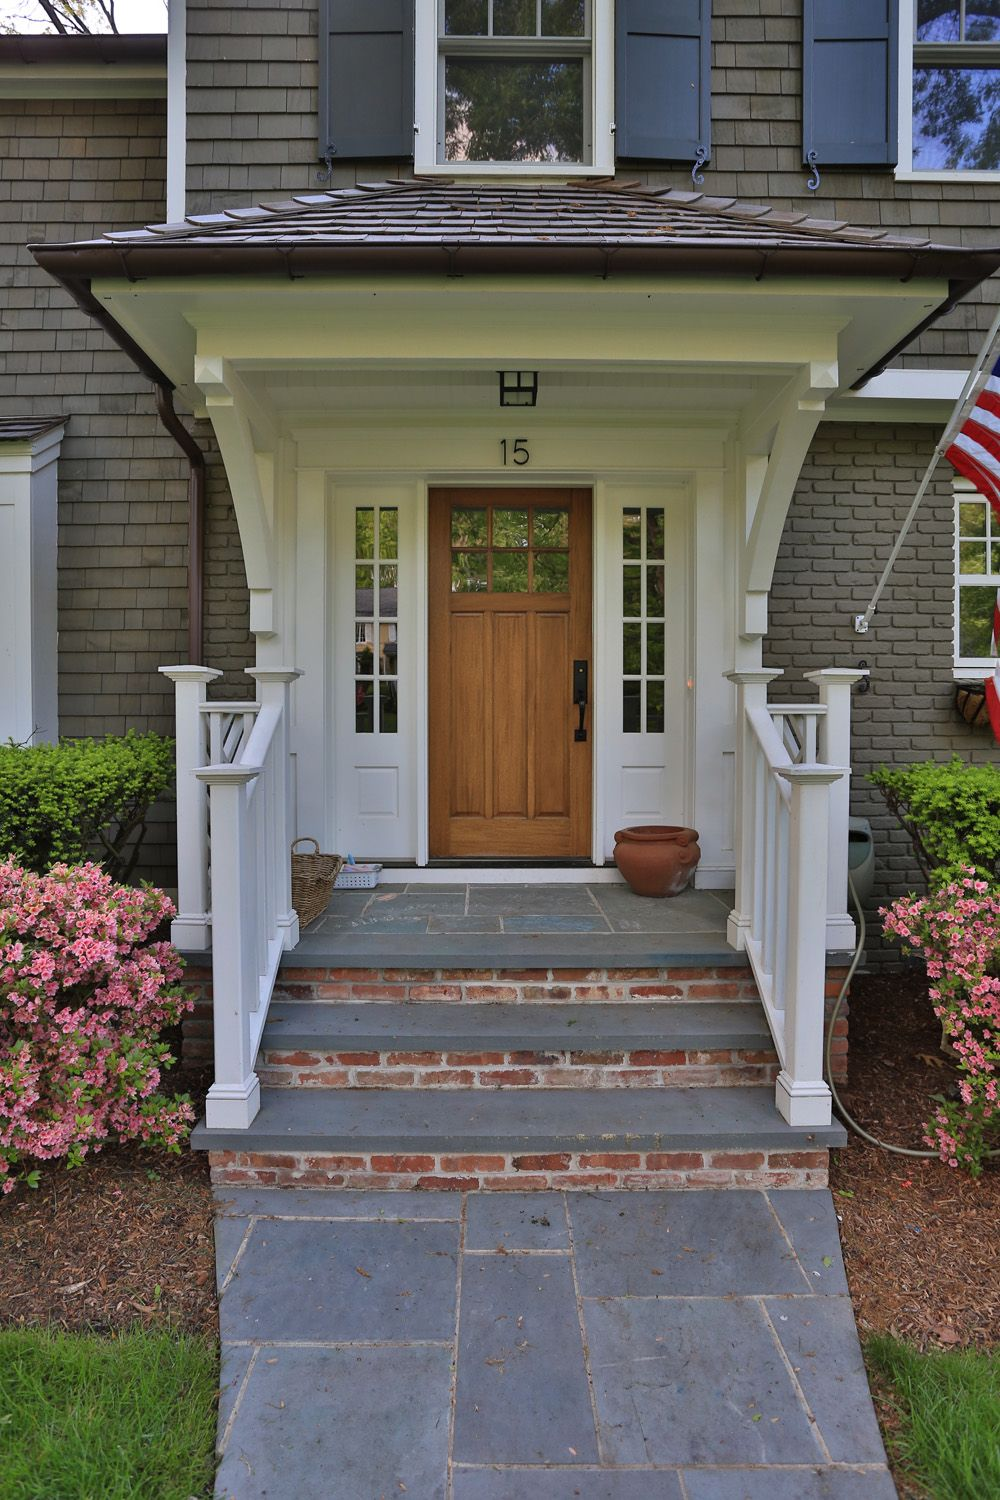 Bluestone & Brick Front Entrance Steps | Masonry, Patios & Porches ...